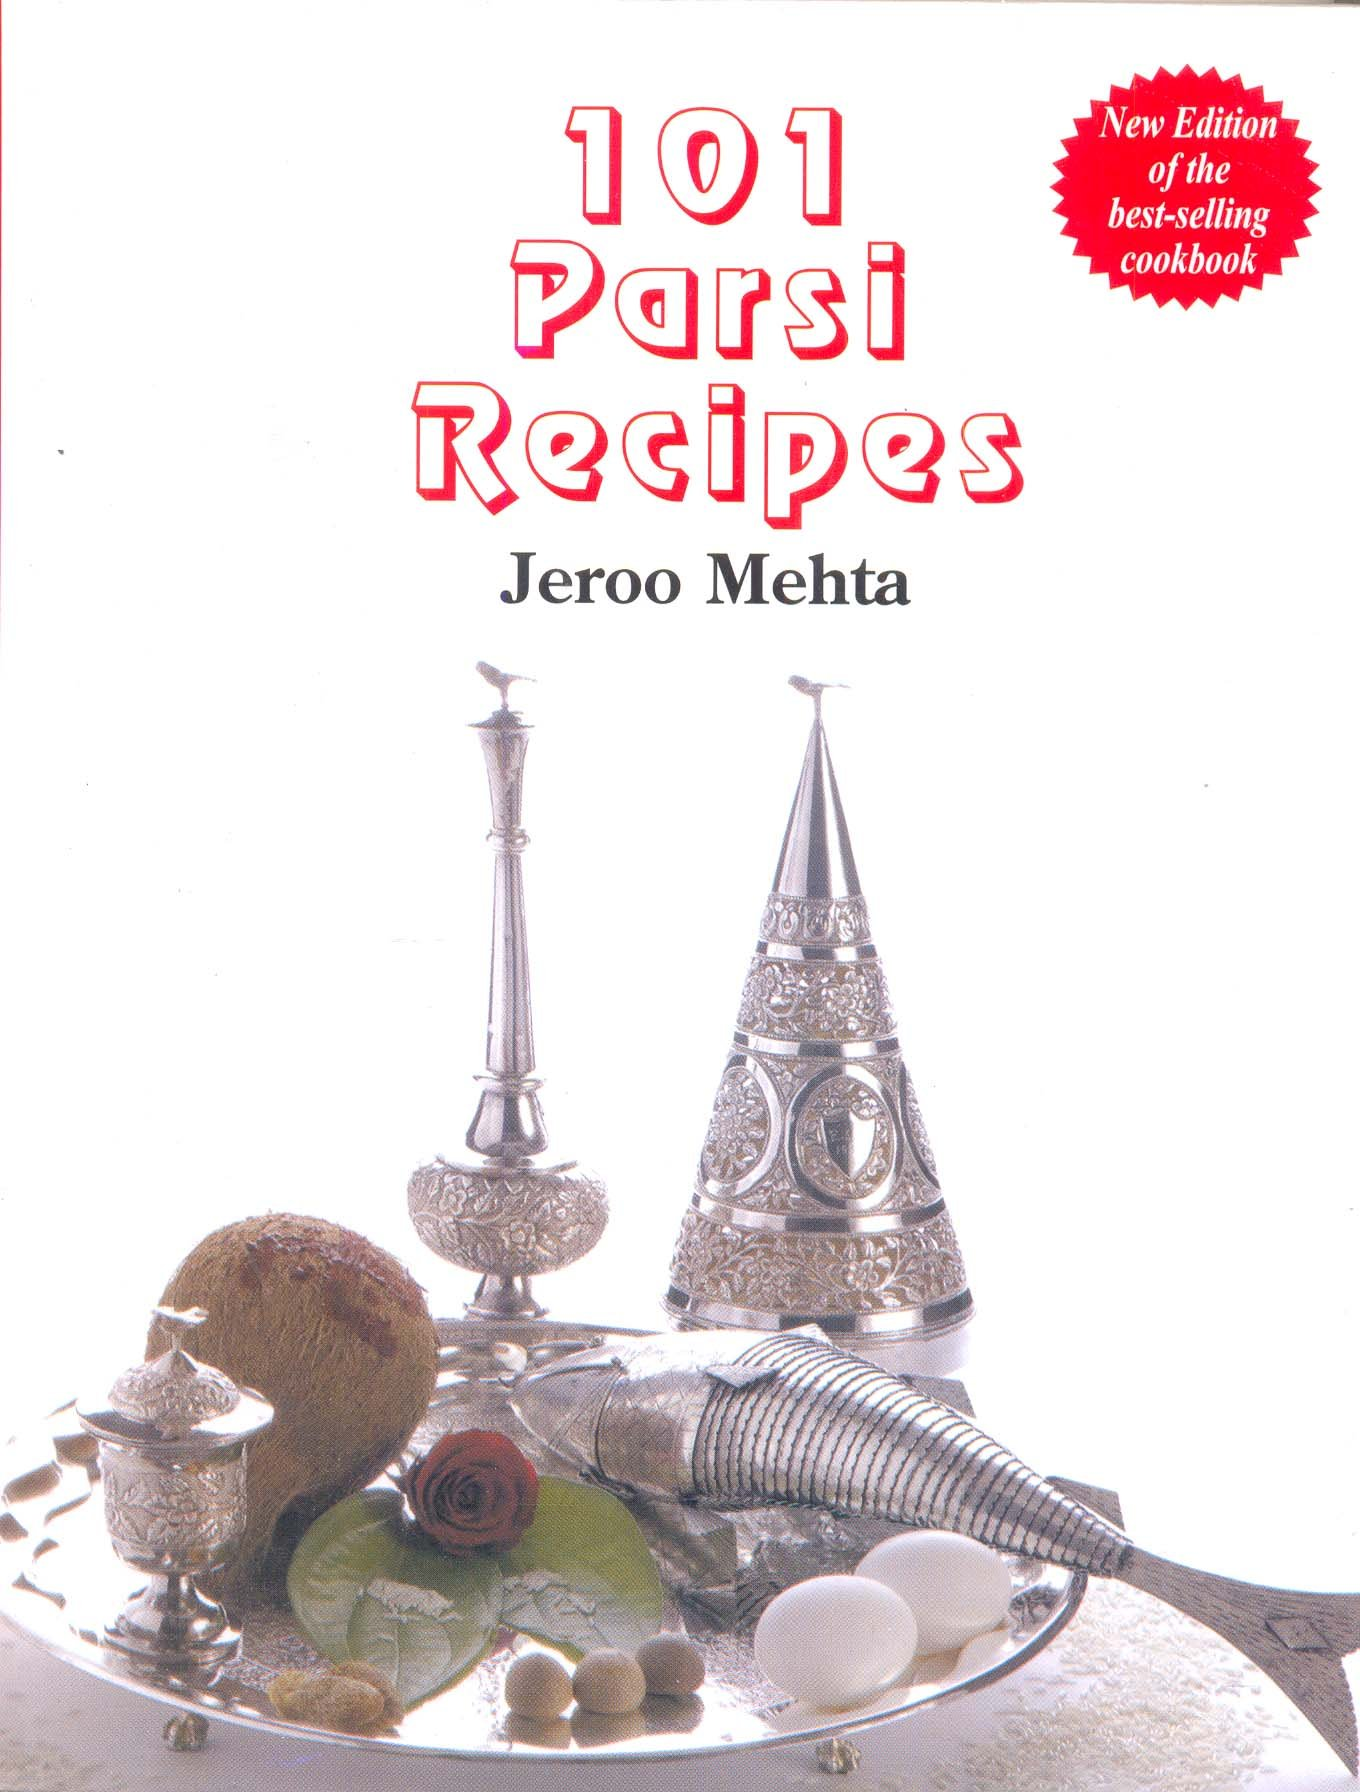 Amazon buy 101 parsi recipes book online at low prices in india amazon buy 101 parsi recipes book online at low prices in india 101 parsi recipes reviews ratings forumfinder